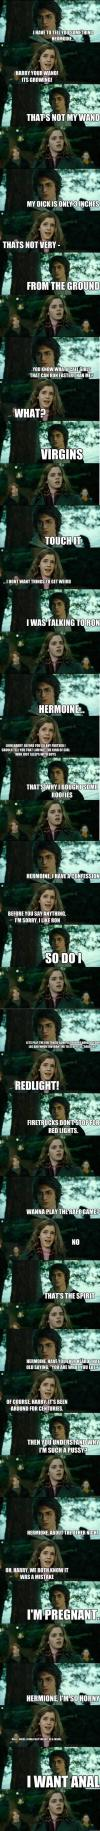 horny harry potter and hermione granger meme compilation